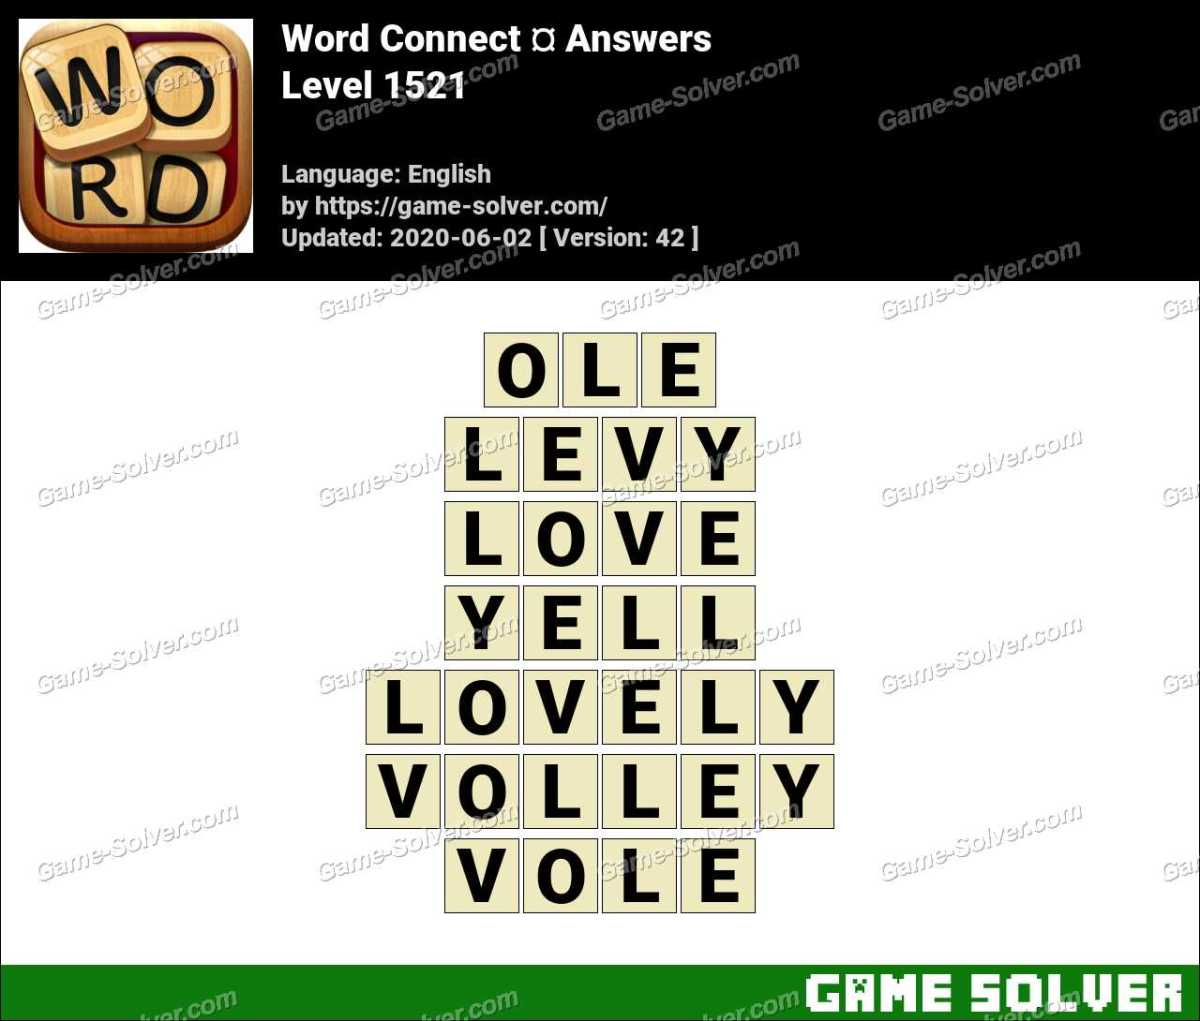 Word Connect Level 1521 Answers